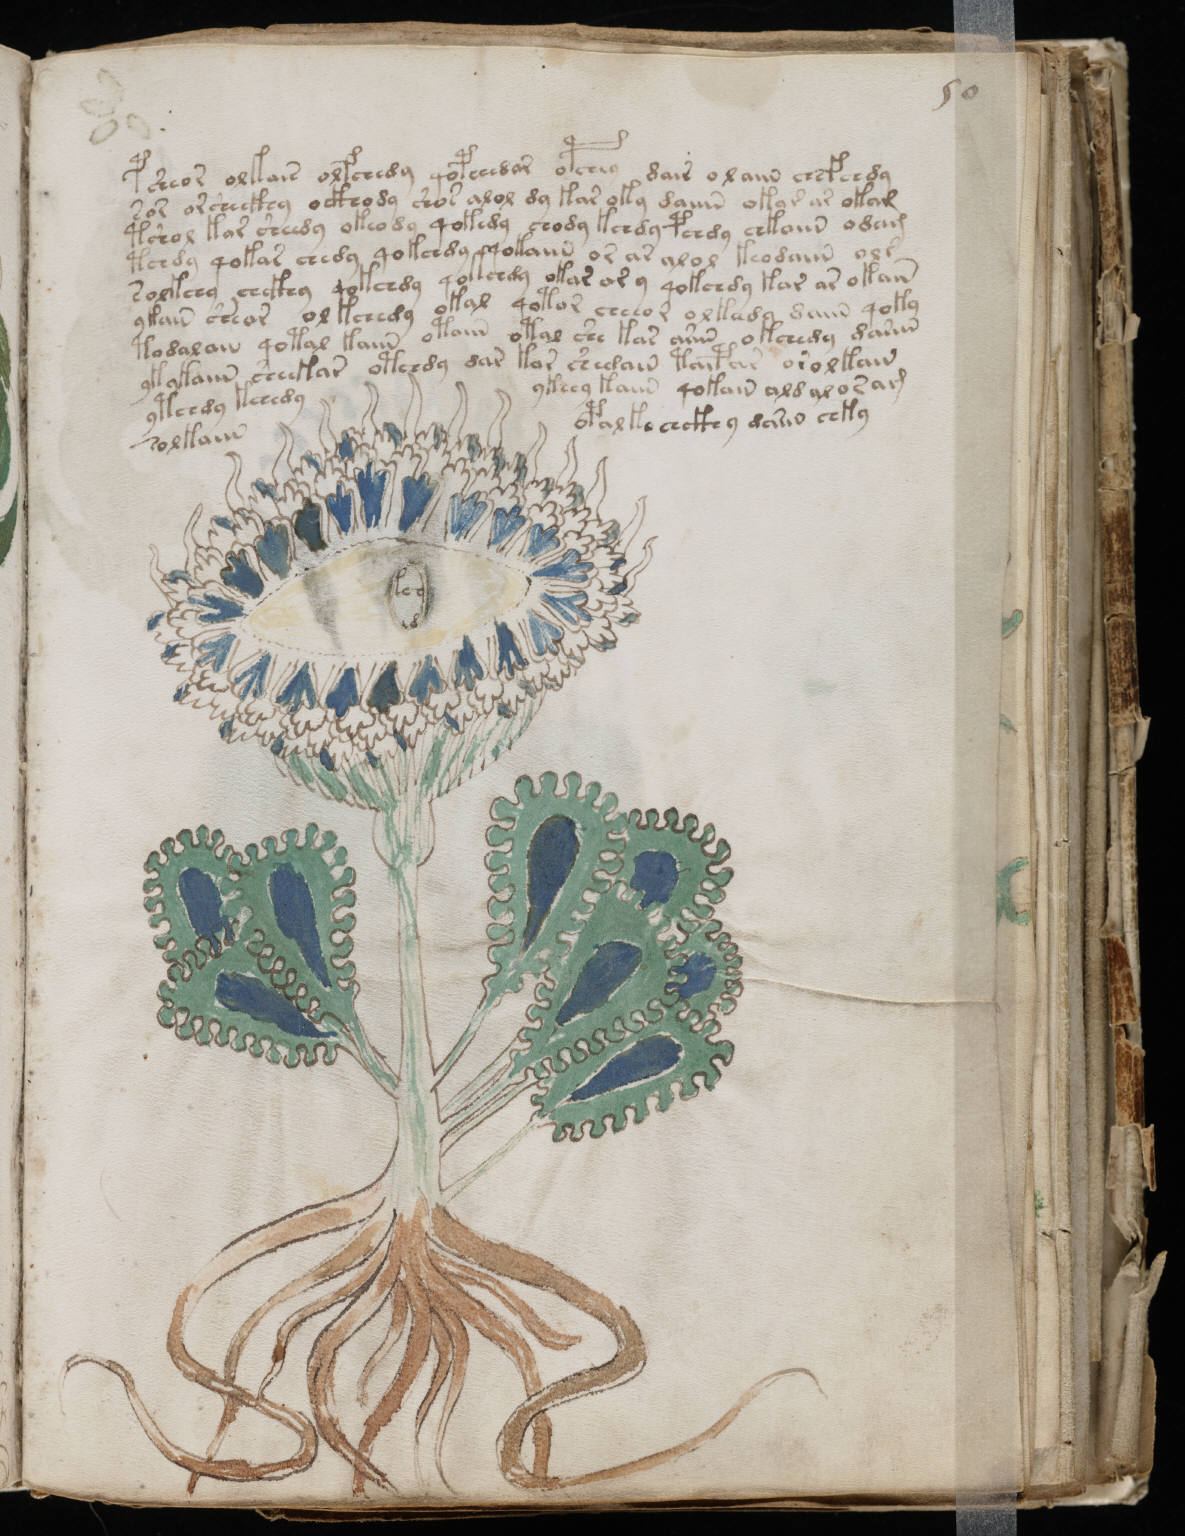 https://upload.wikimedia.org/wikipedia/commons/2/26/Voynich_Manuscript_%2899%29.jpg